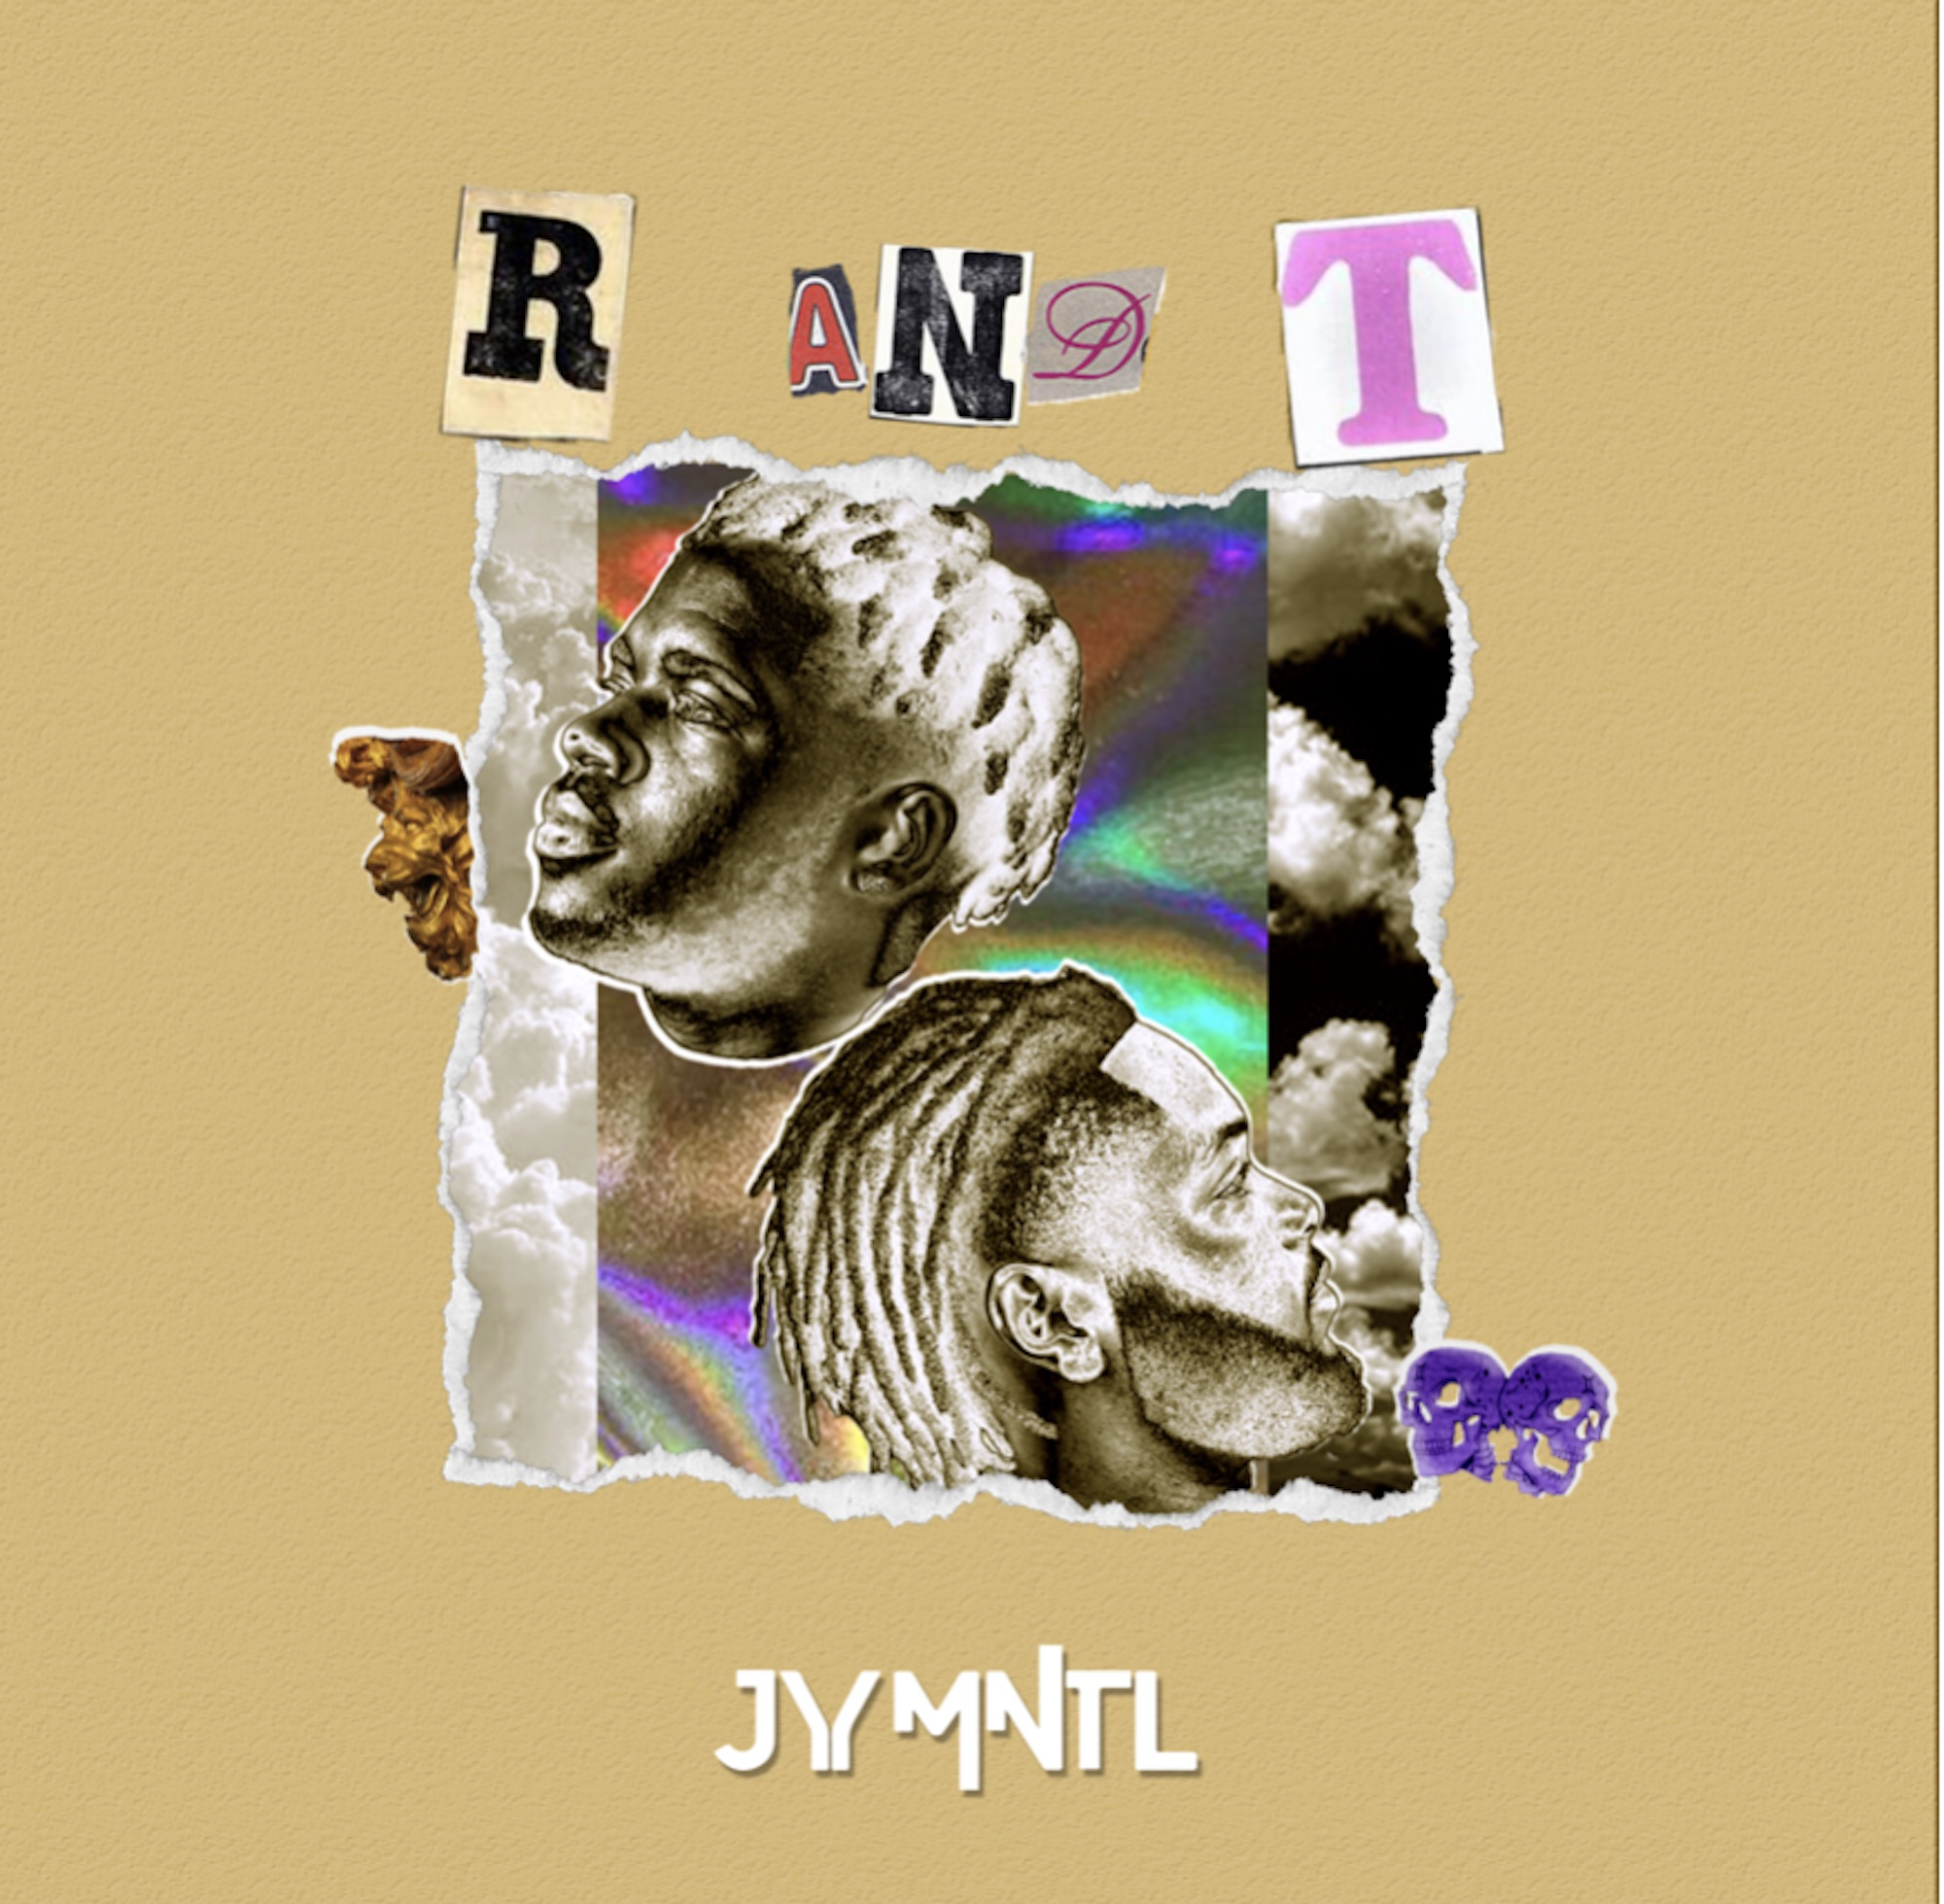 JY MNTL drop their new single